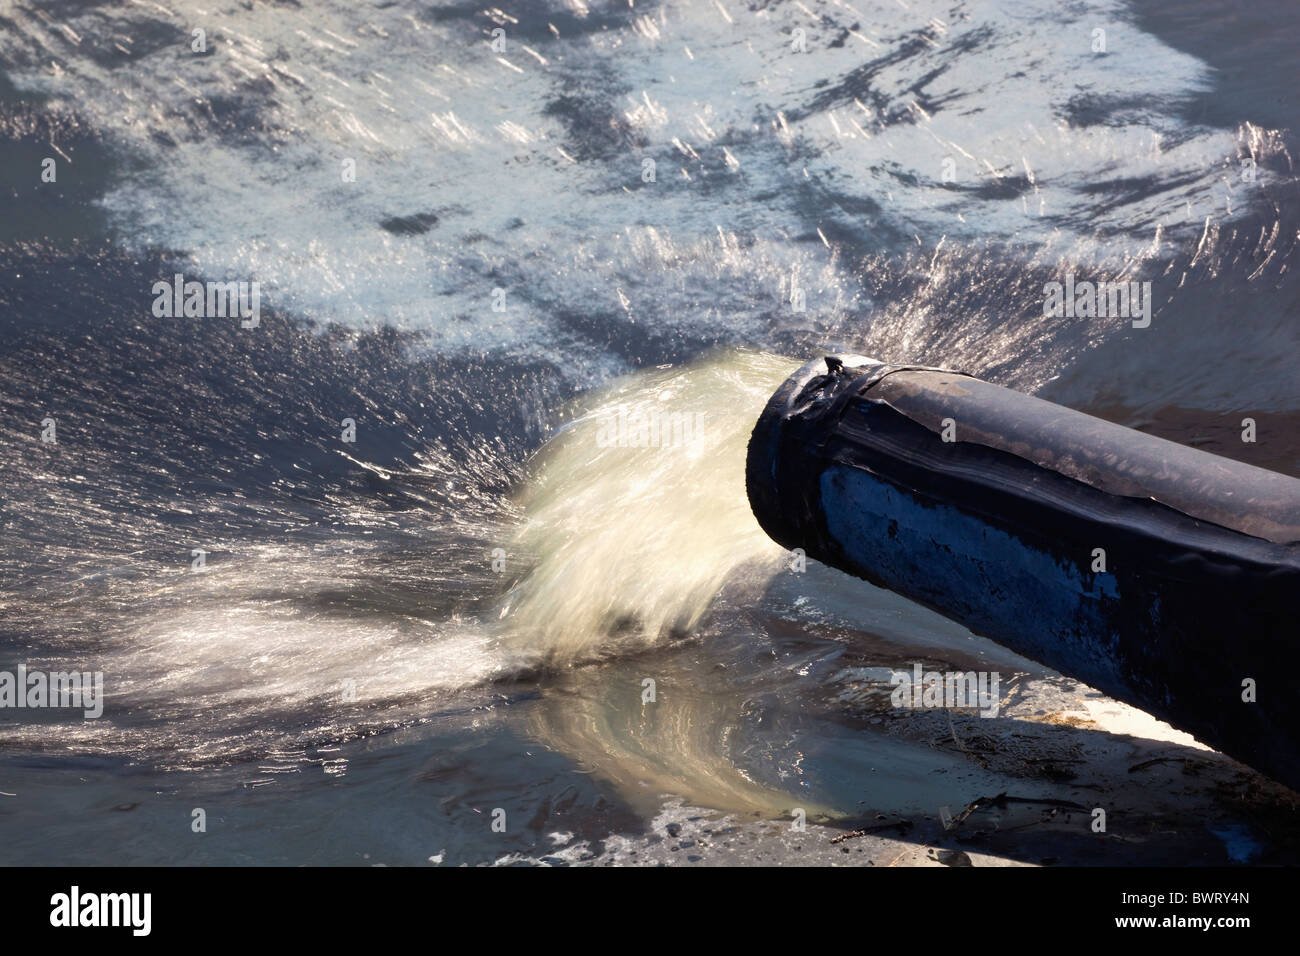 Water gushing from pipe into reservoir. - Stock Image